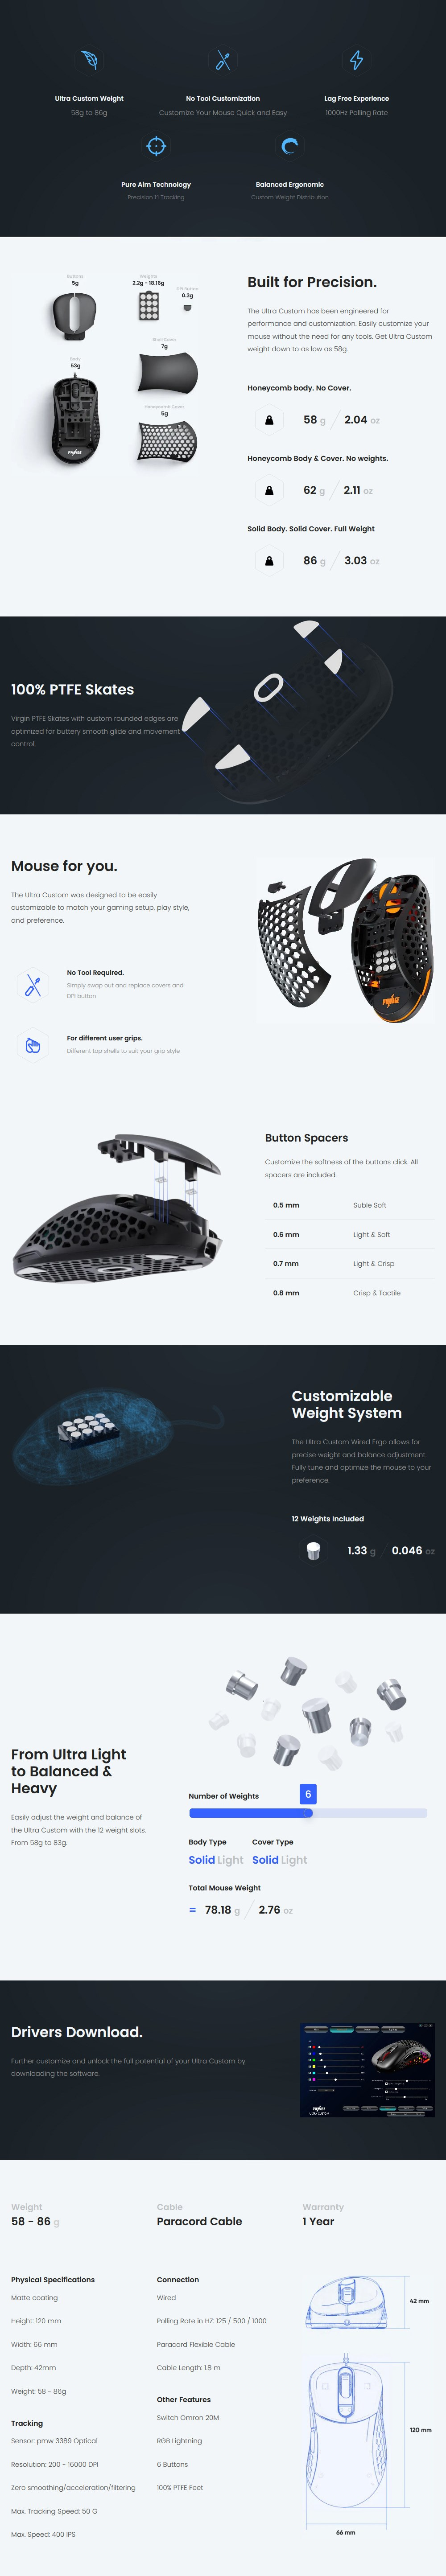 Pwnage Ultra Custom Optical Wired Gaming Mouse - Black - Overview 1